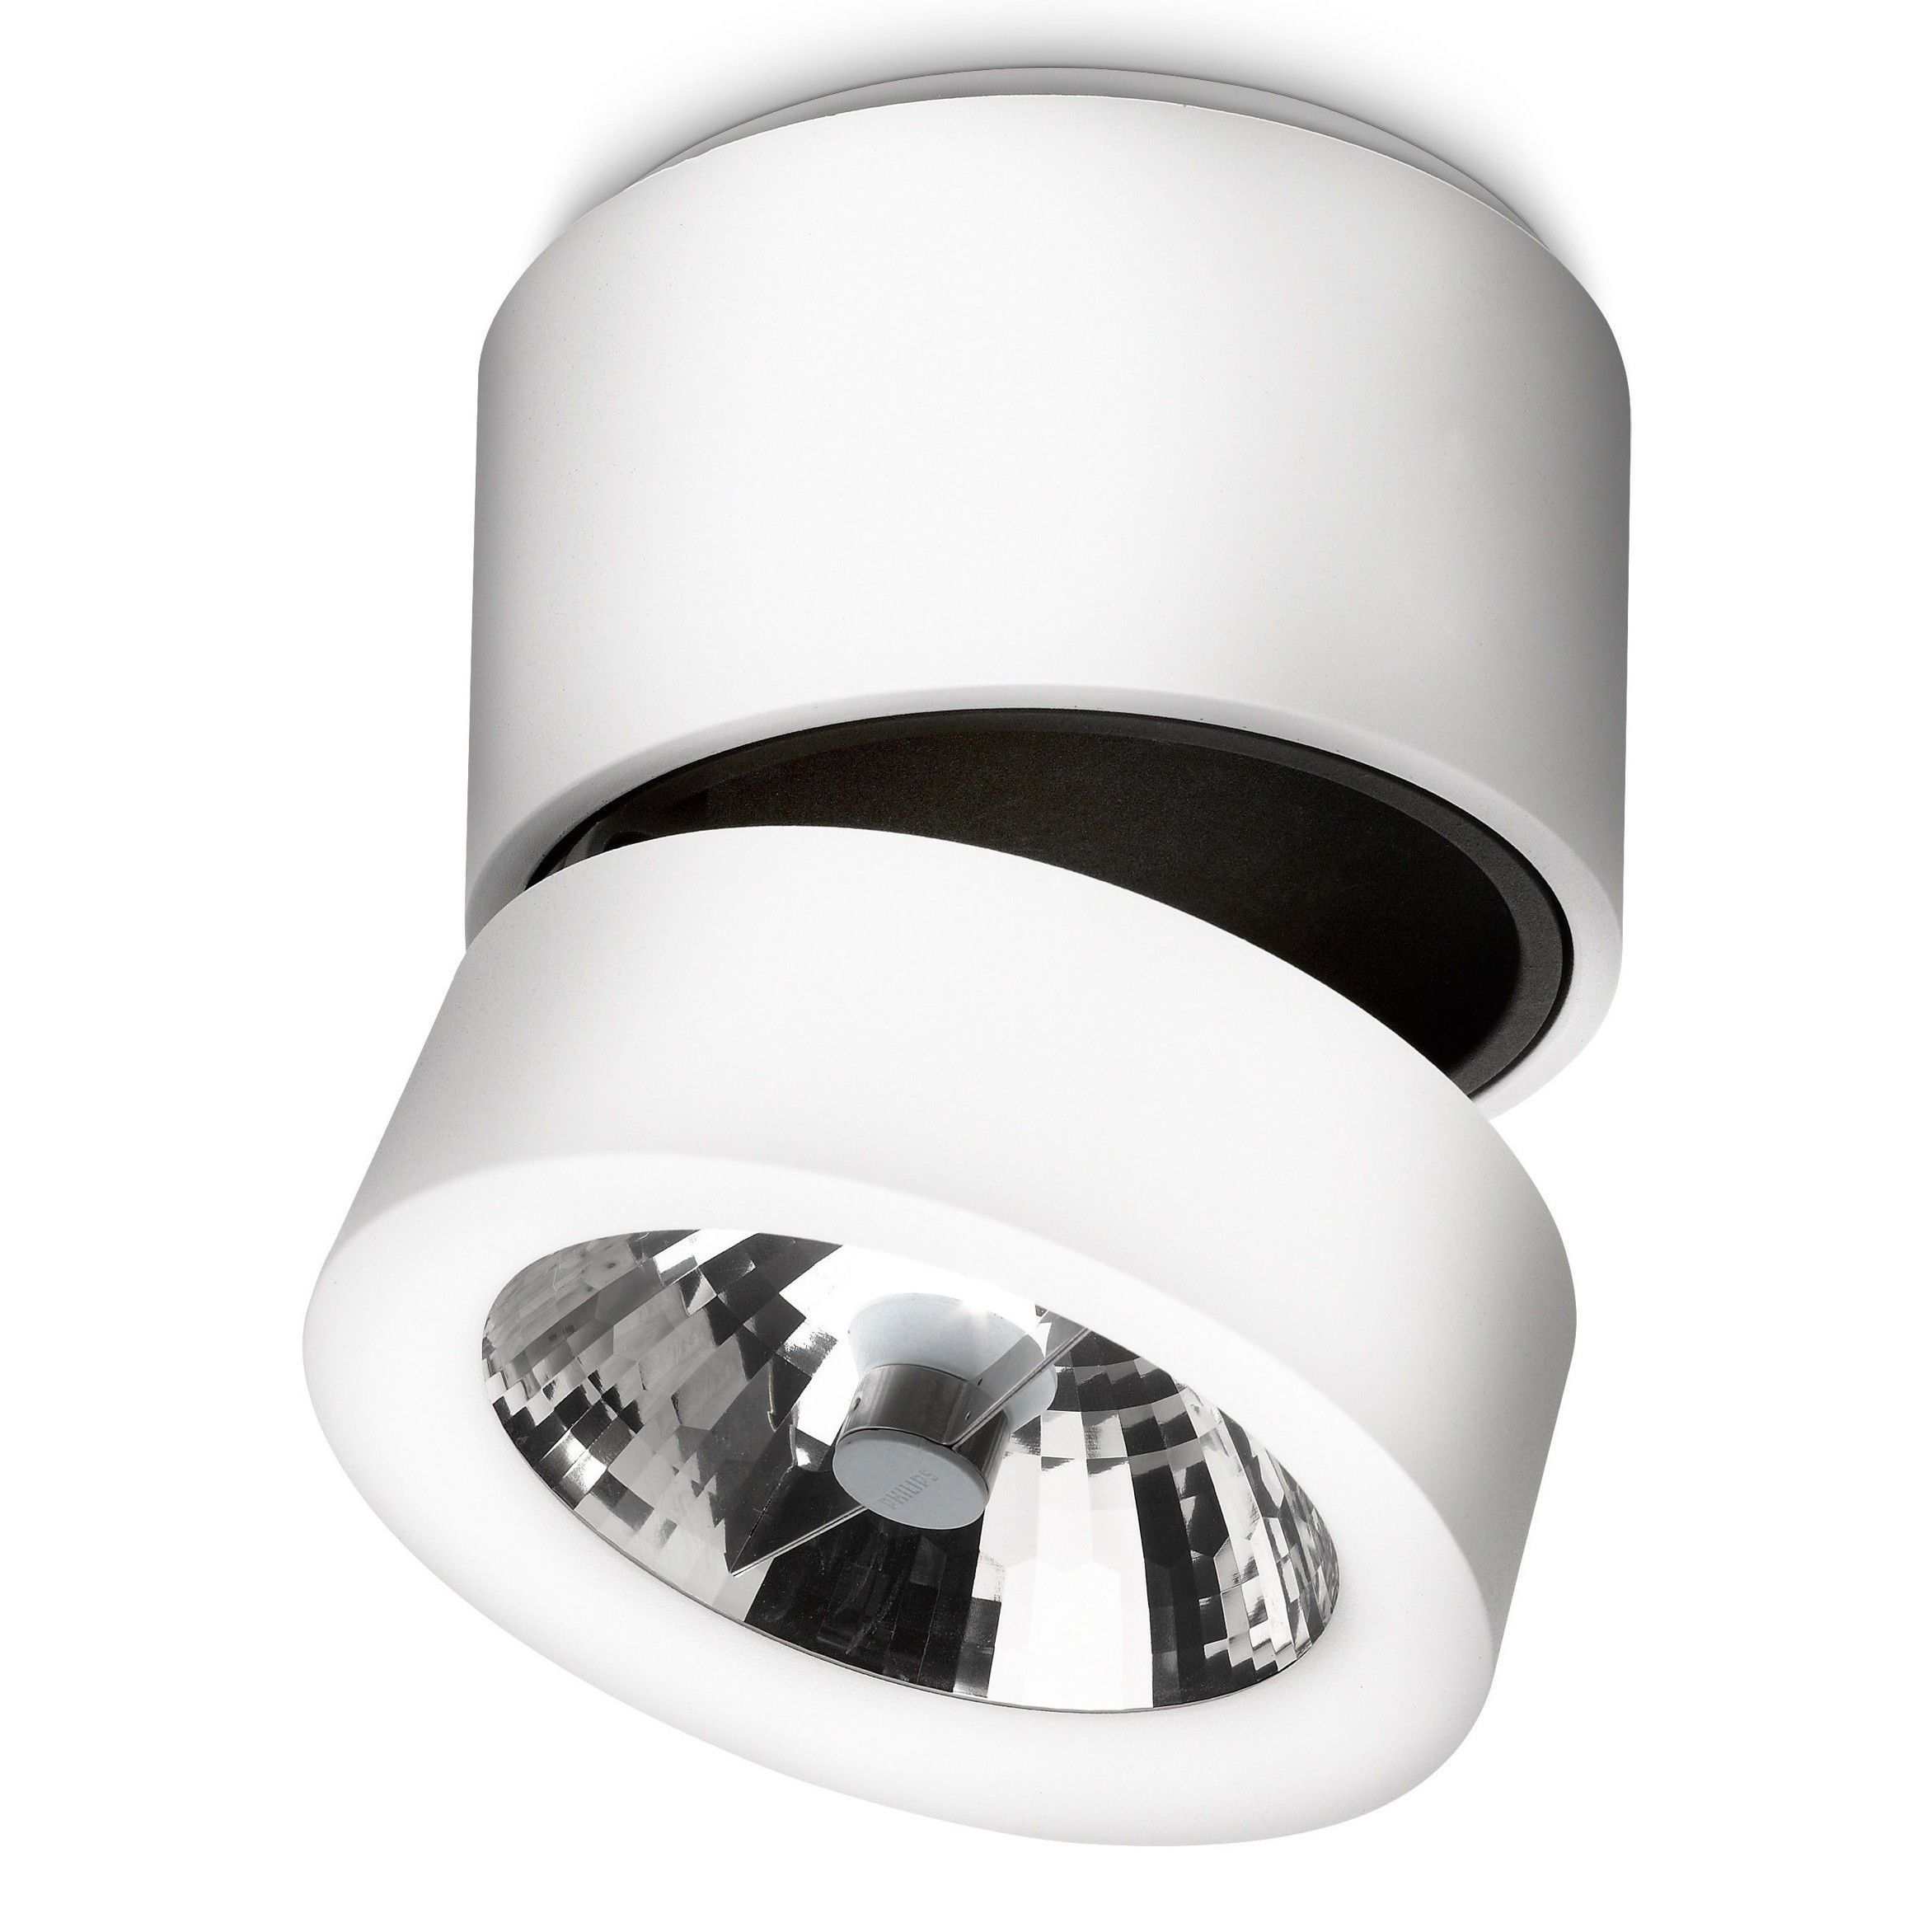 tubiz spot lirio by philips lamplicht hal plafond led verlichting